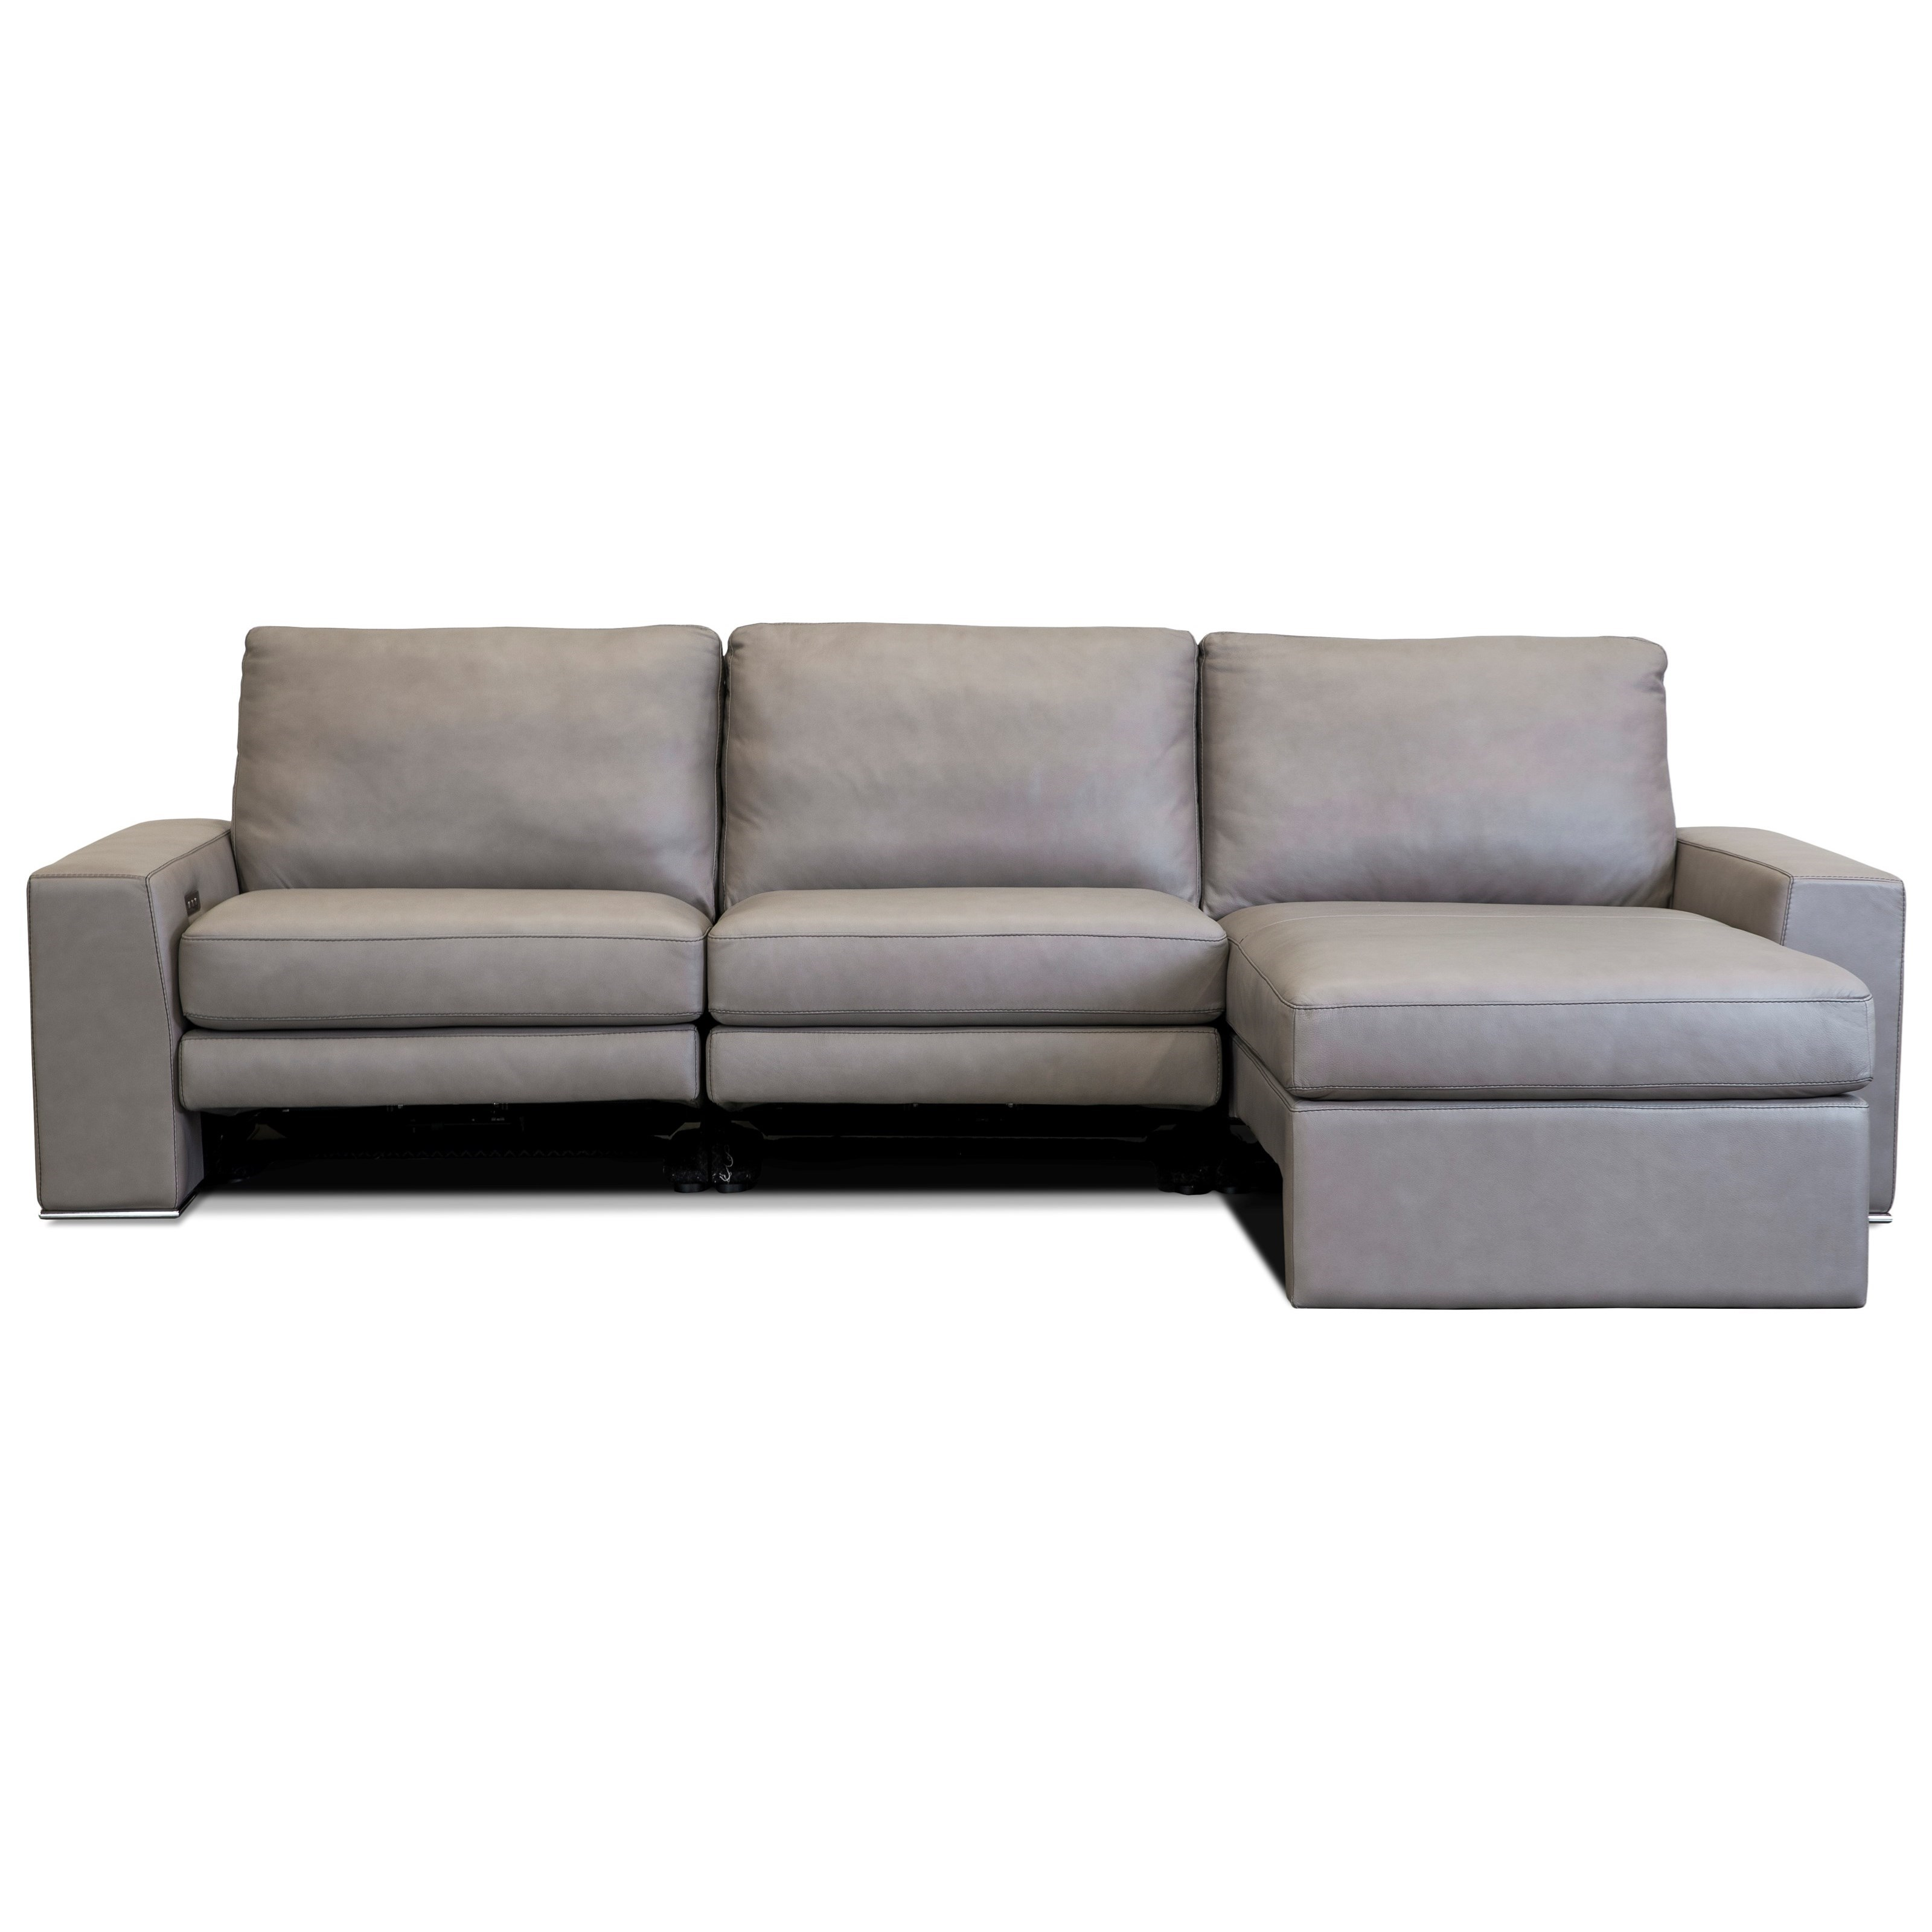 Picture of: American Leather Paxton Contemporary 3 Seat Power Reclining Sectional Sofa With Usb Chargers And Left Arm Sitting Chaise Sprintz Furniture Reclining Sectional Sofas